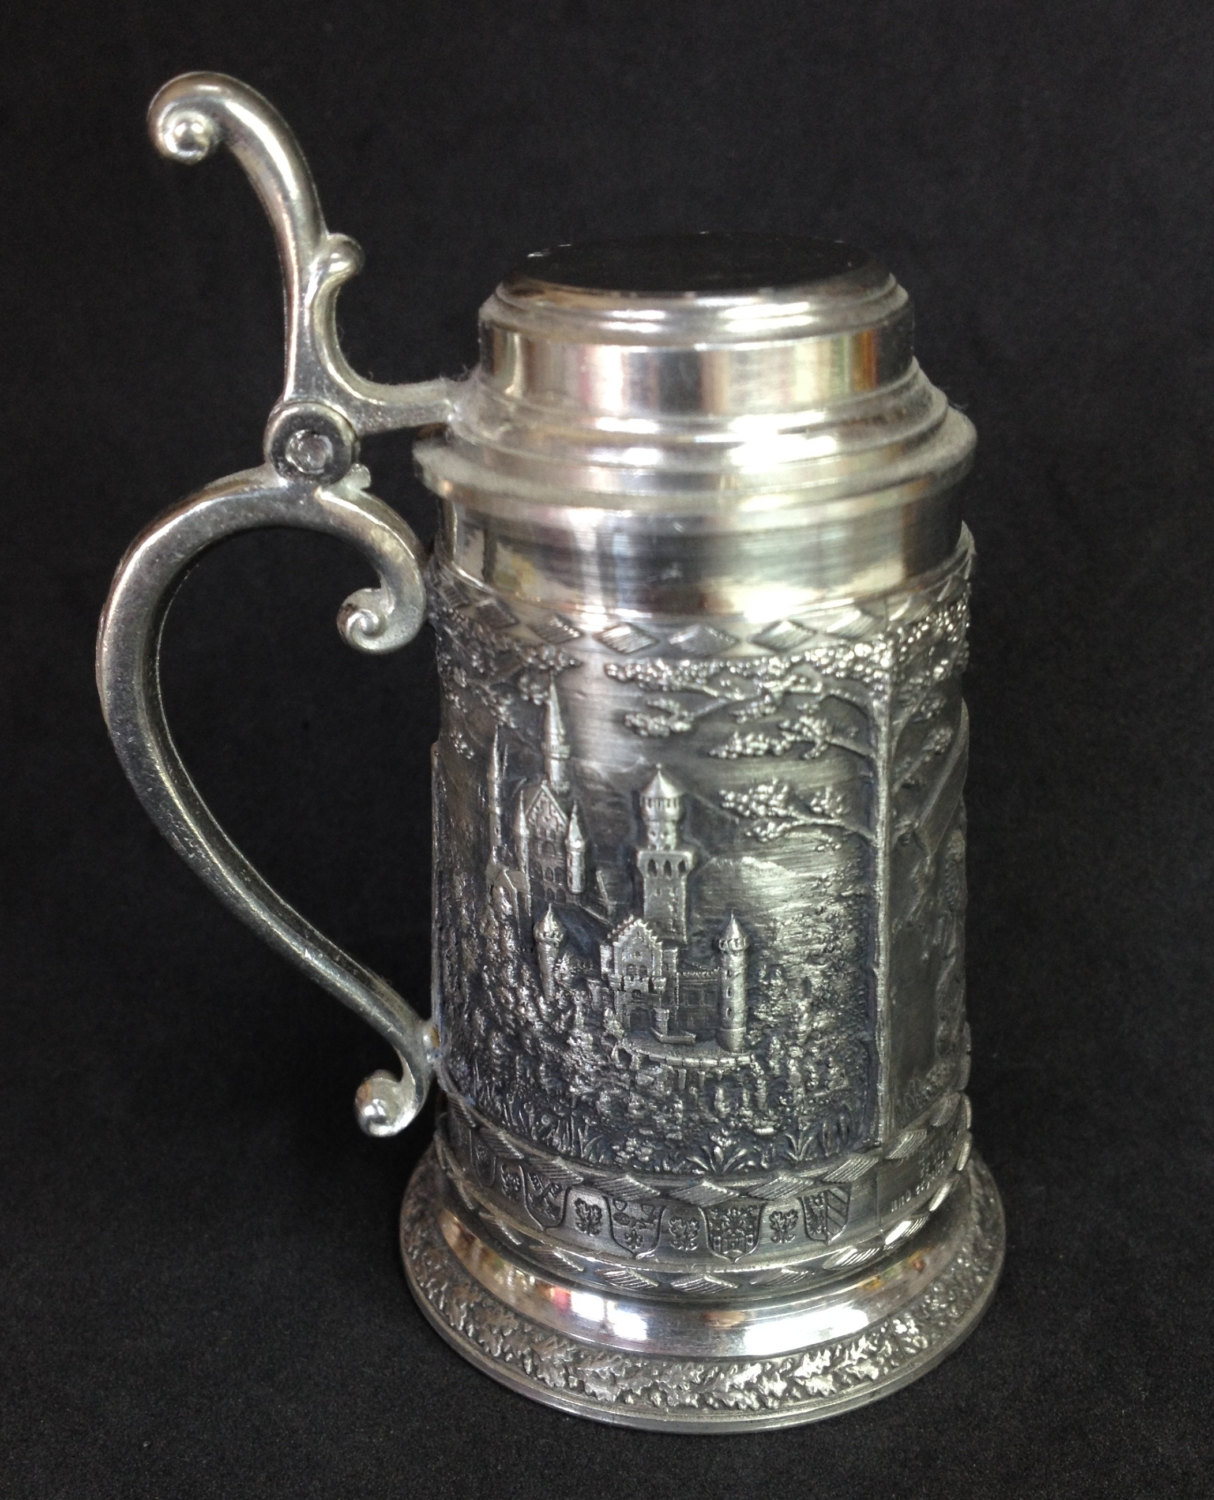 SKS ZINN Mini Beer Stein Made in Germany 95% by crackersinbed.